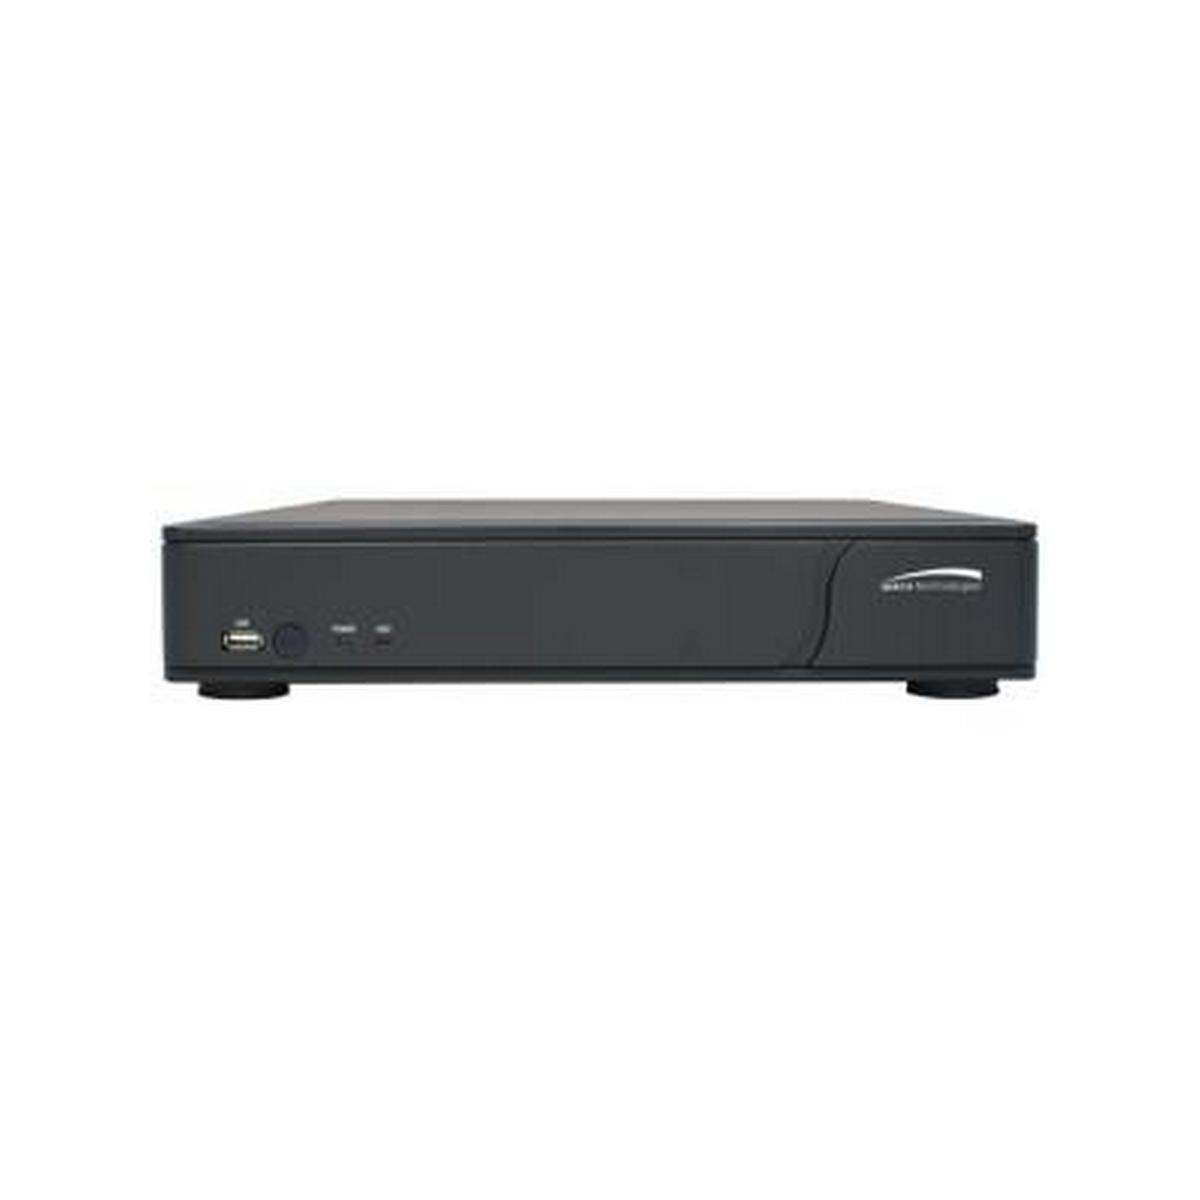 Speco D16RS250 16 Channel H.264 DVR, 250GB HDD